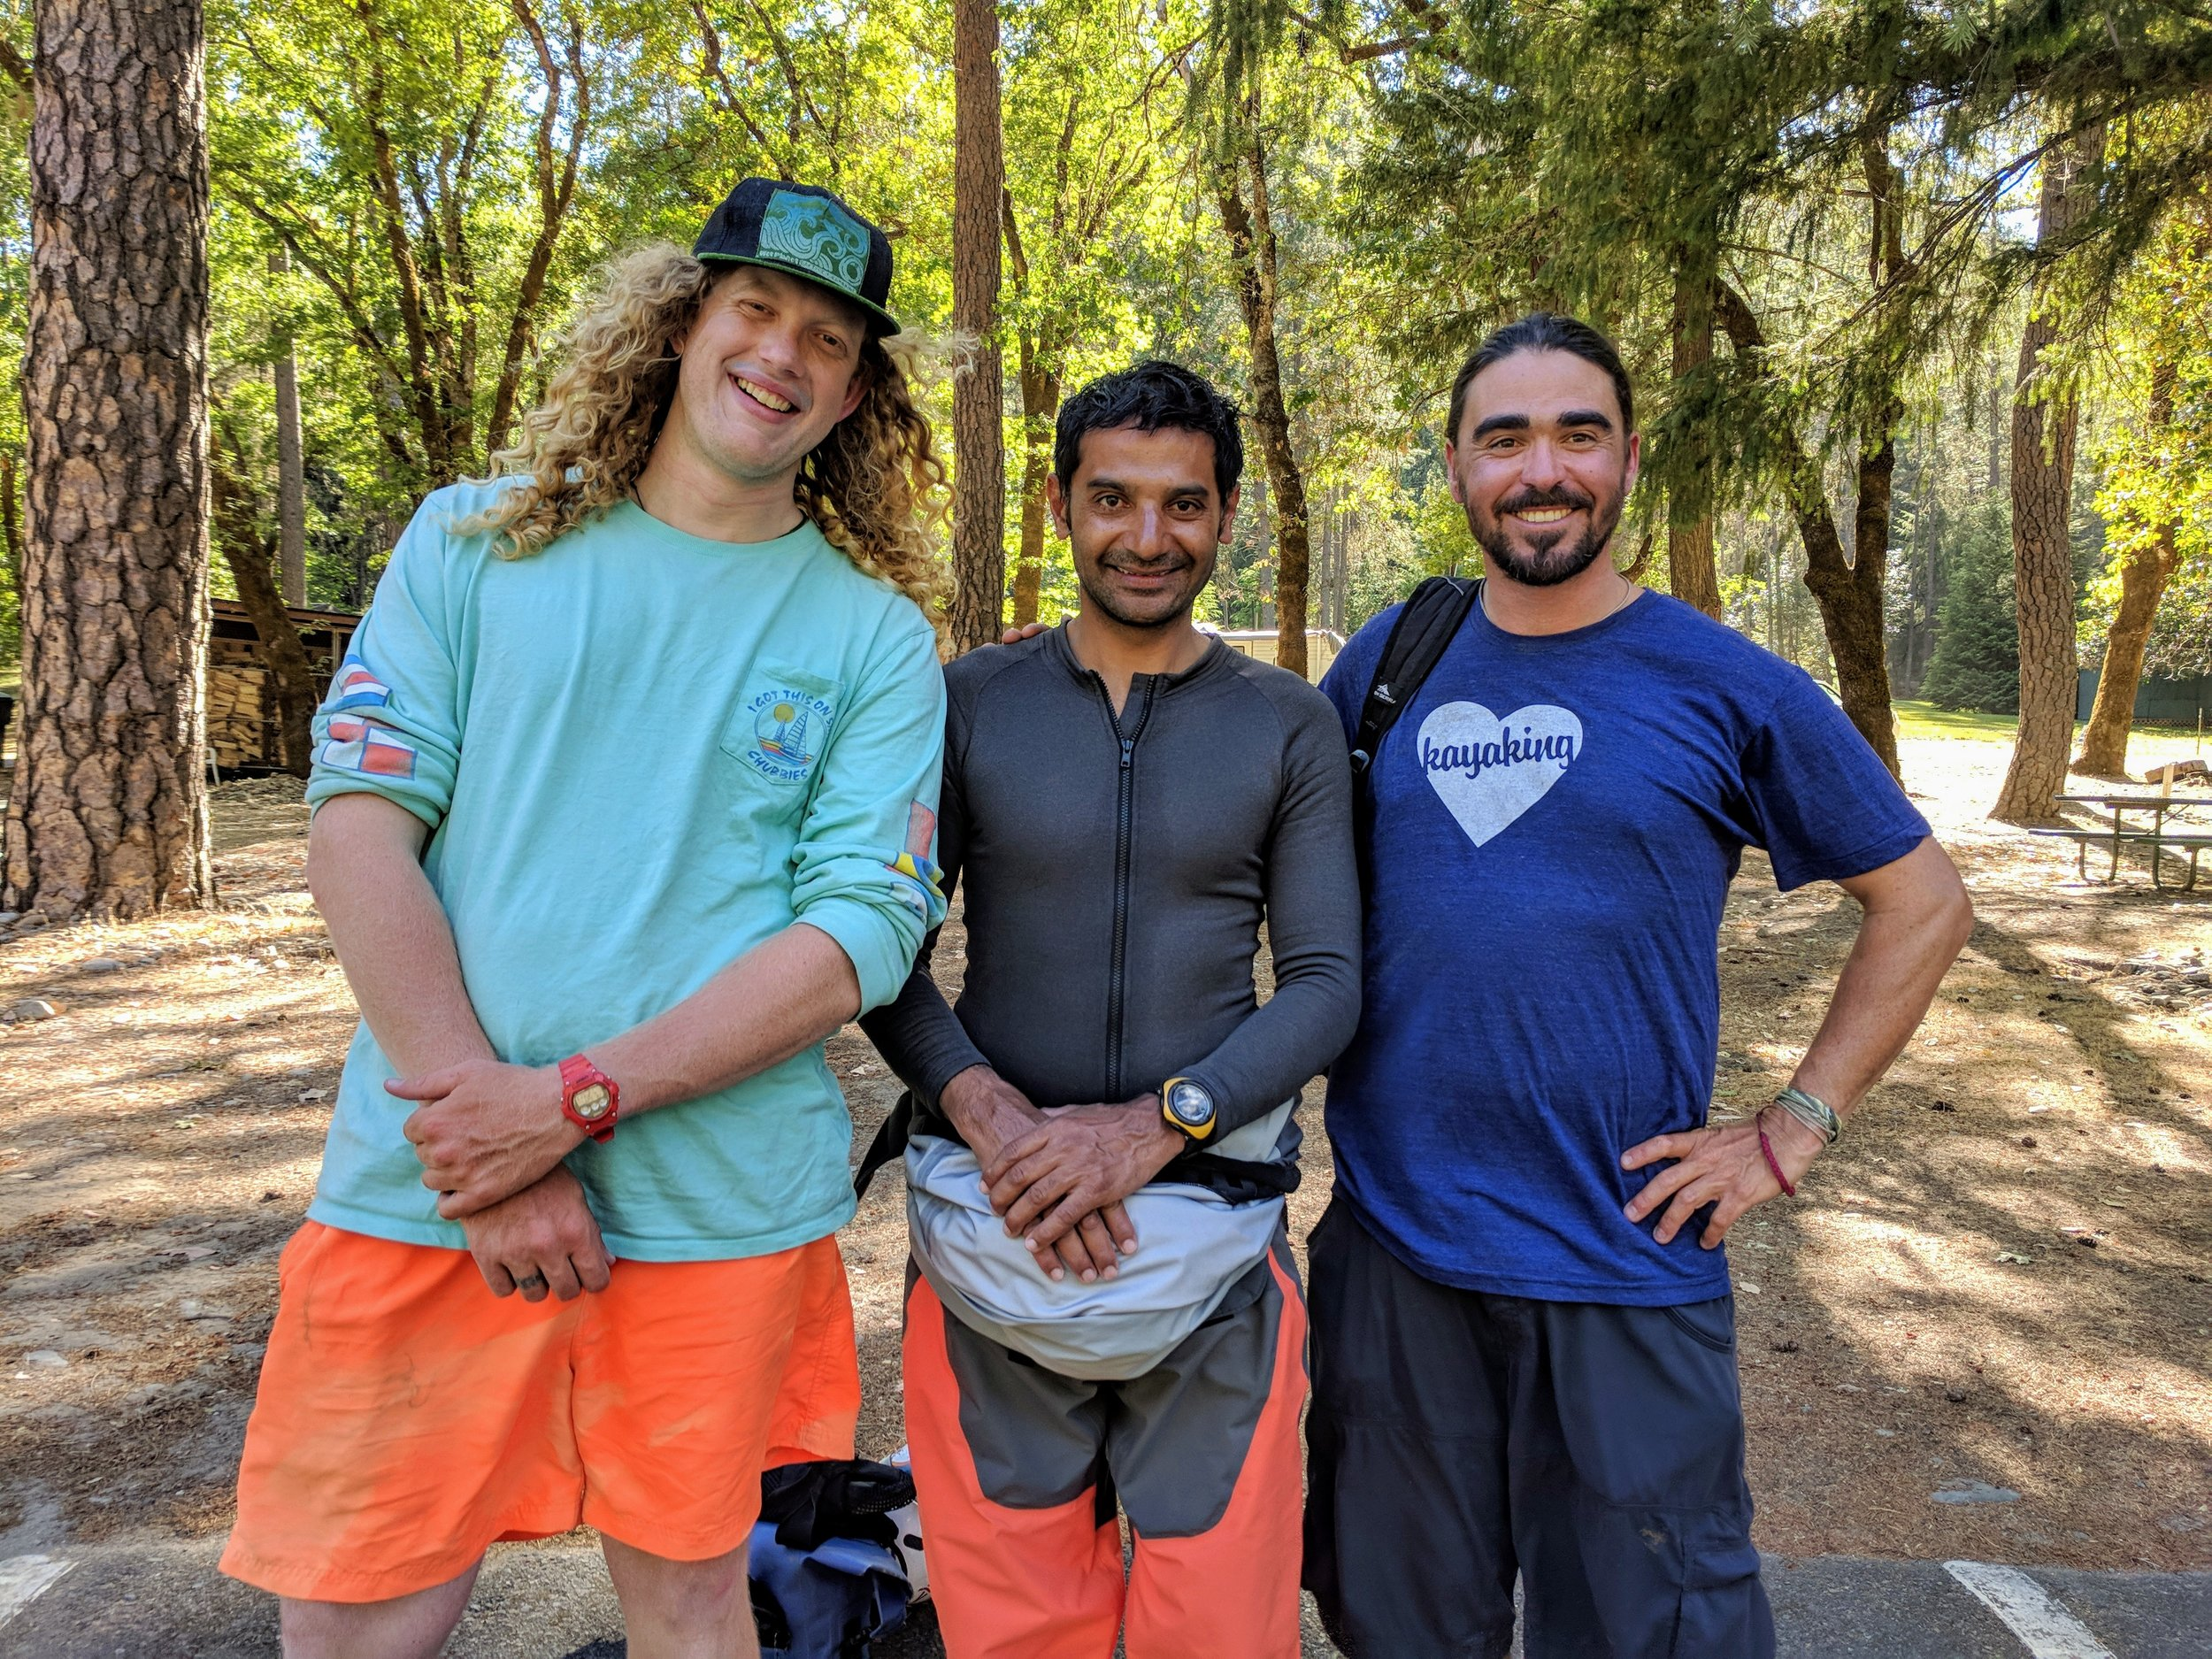 Big smiles with his instructors after successfully completing the course! From left: John, Anvesh, JR.